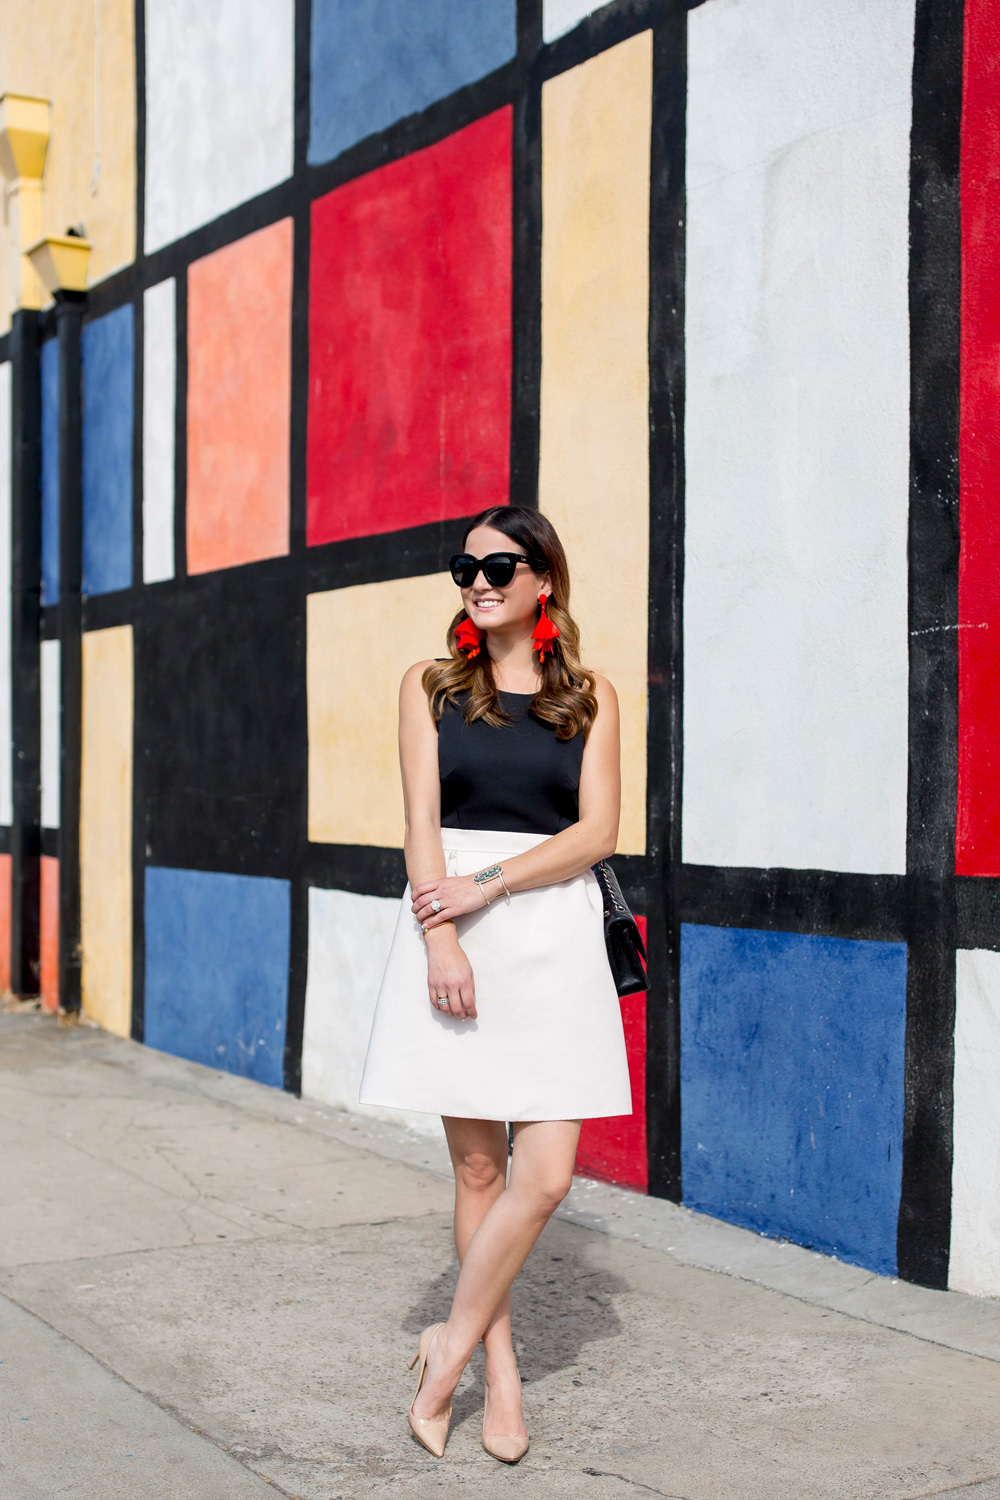 Jennifer Lake Style Charade in a black and white Kate Spade dress and a red Oscar de la Renta floral earrings at a colorful Mondrian wall mural in Los Angeles